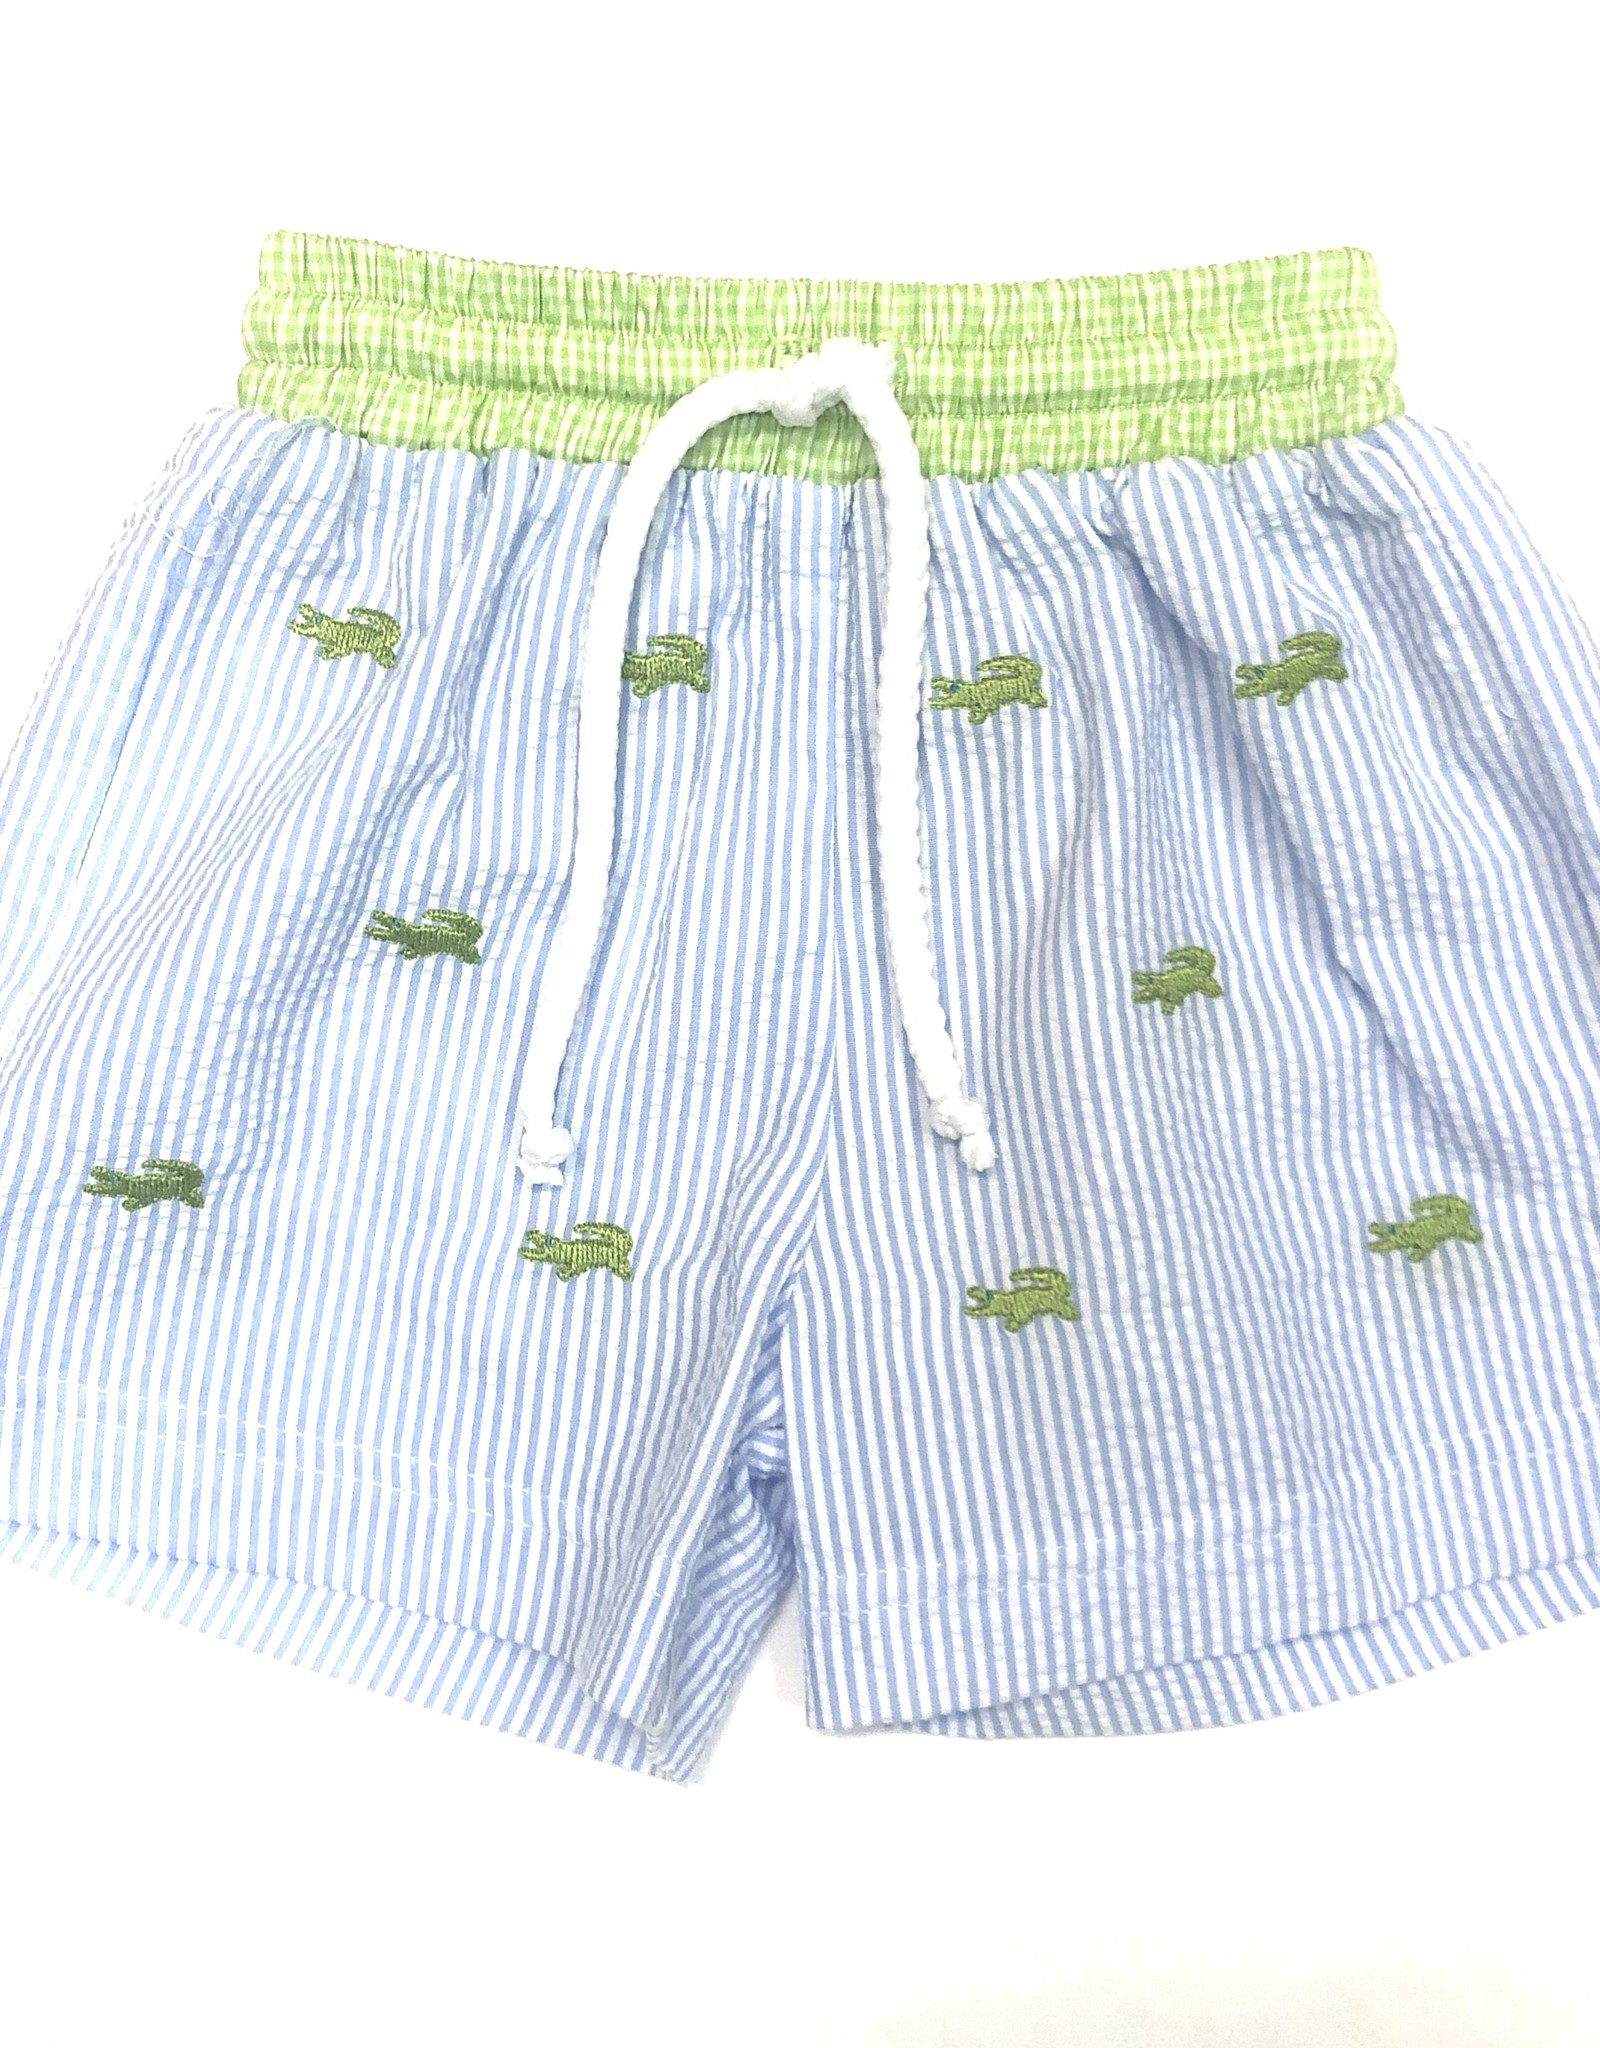 Anavini Alligator Swim Shorts Lt Blue Seersucker